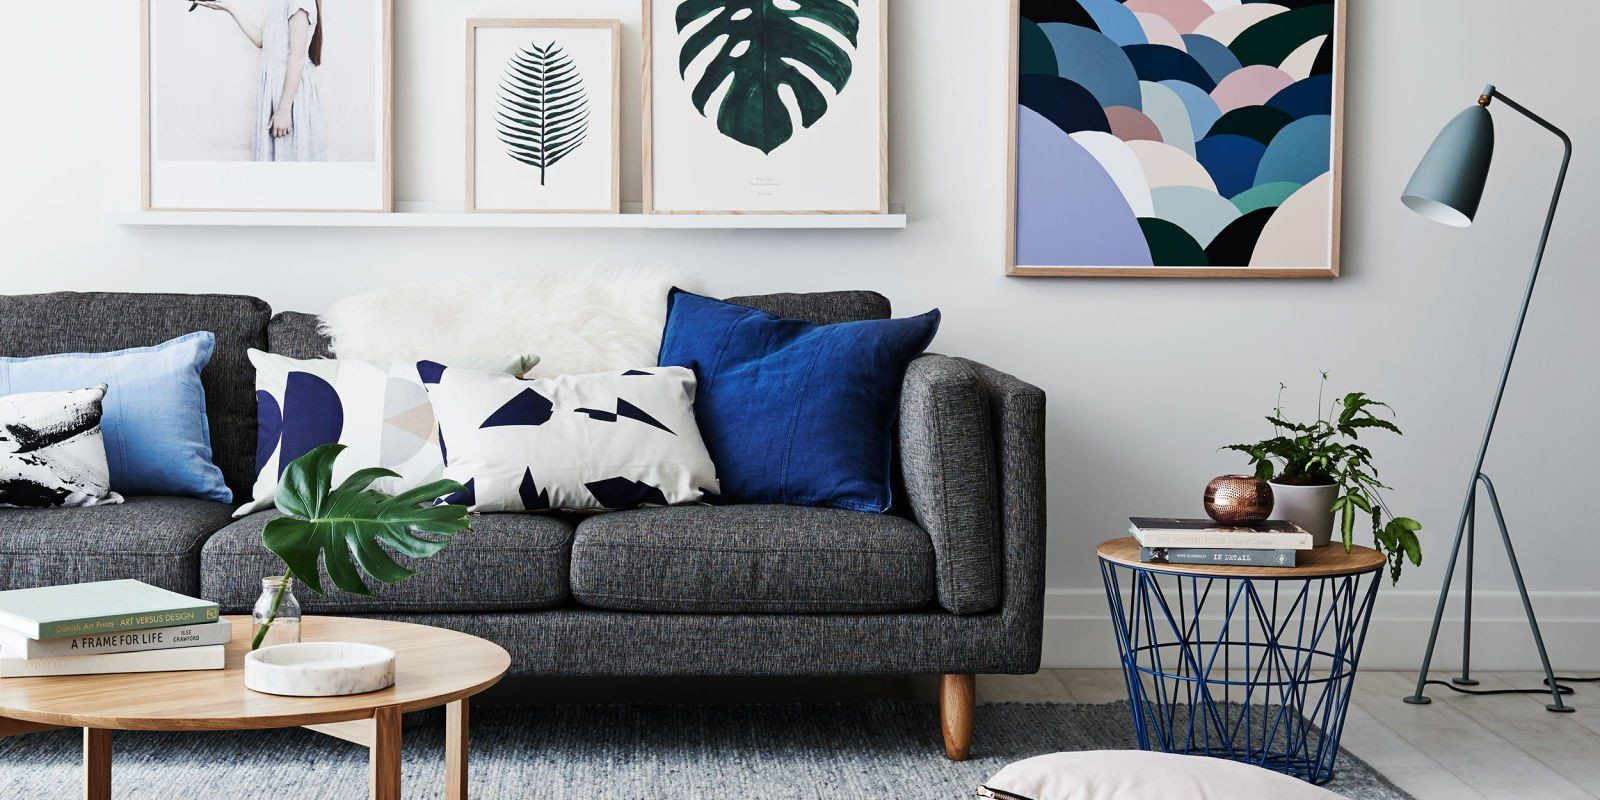 Rent A Living Room Is Furniture Rental The Next Home Design Trend For Millennials .